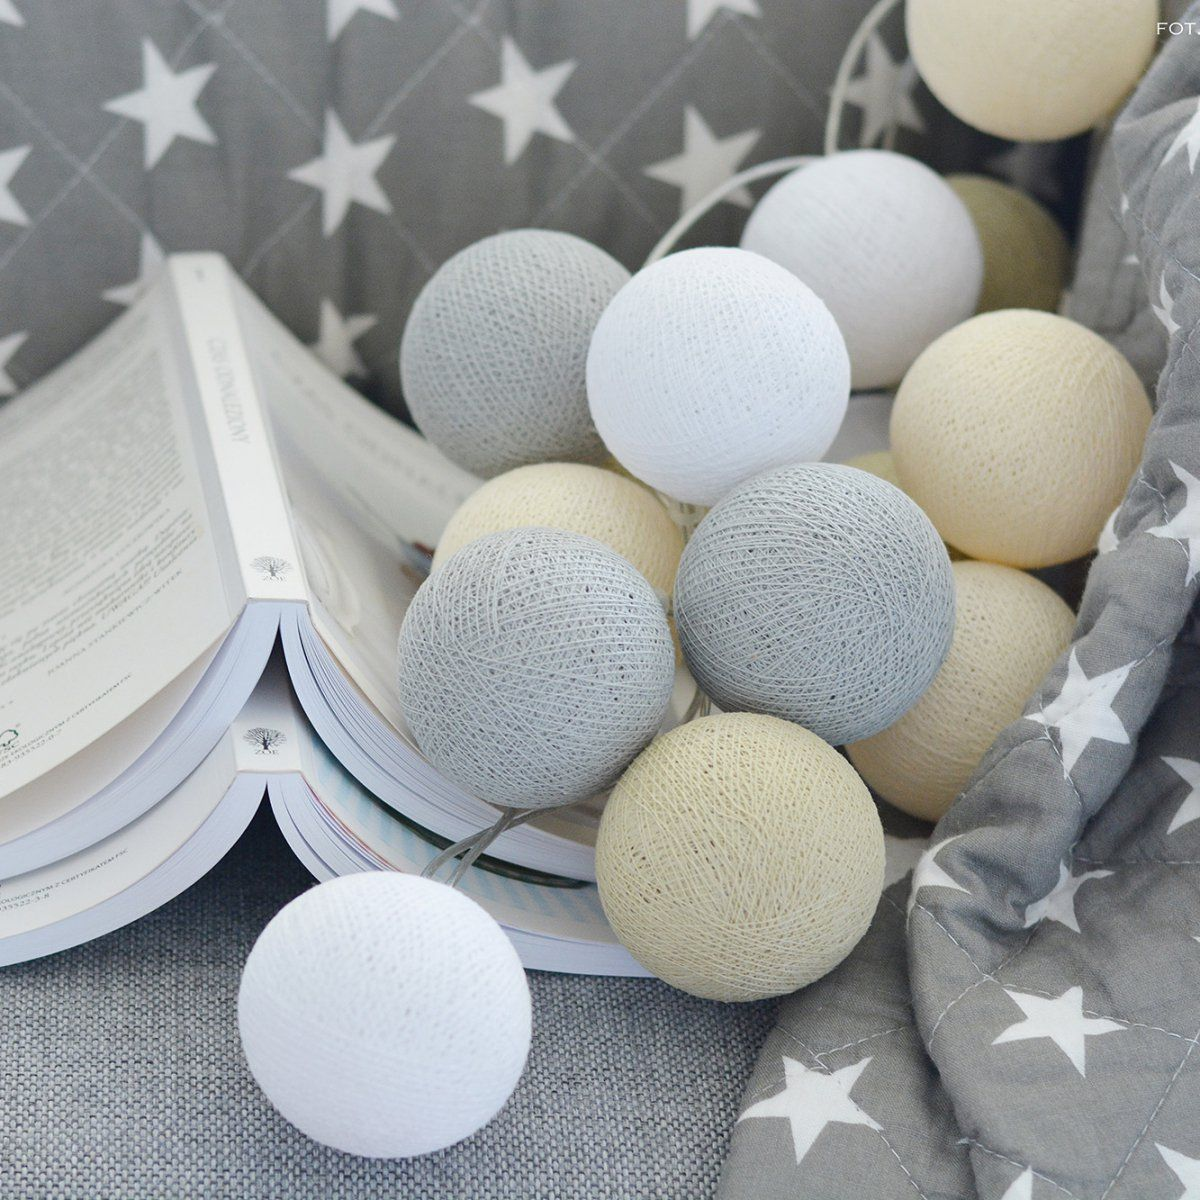 Cotton ball lights c utare google kids room - Baby jungenzimmer ...